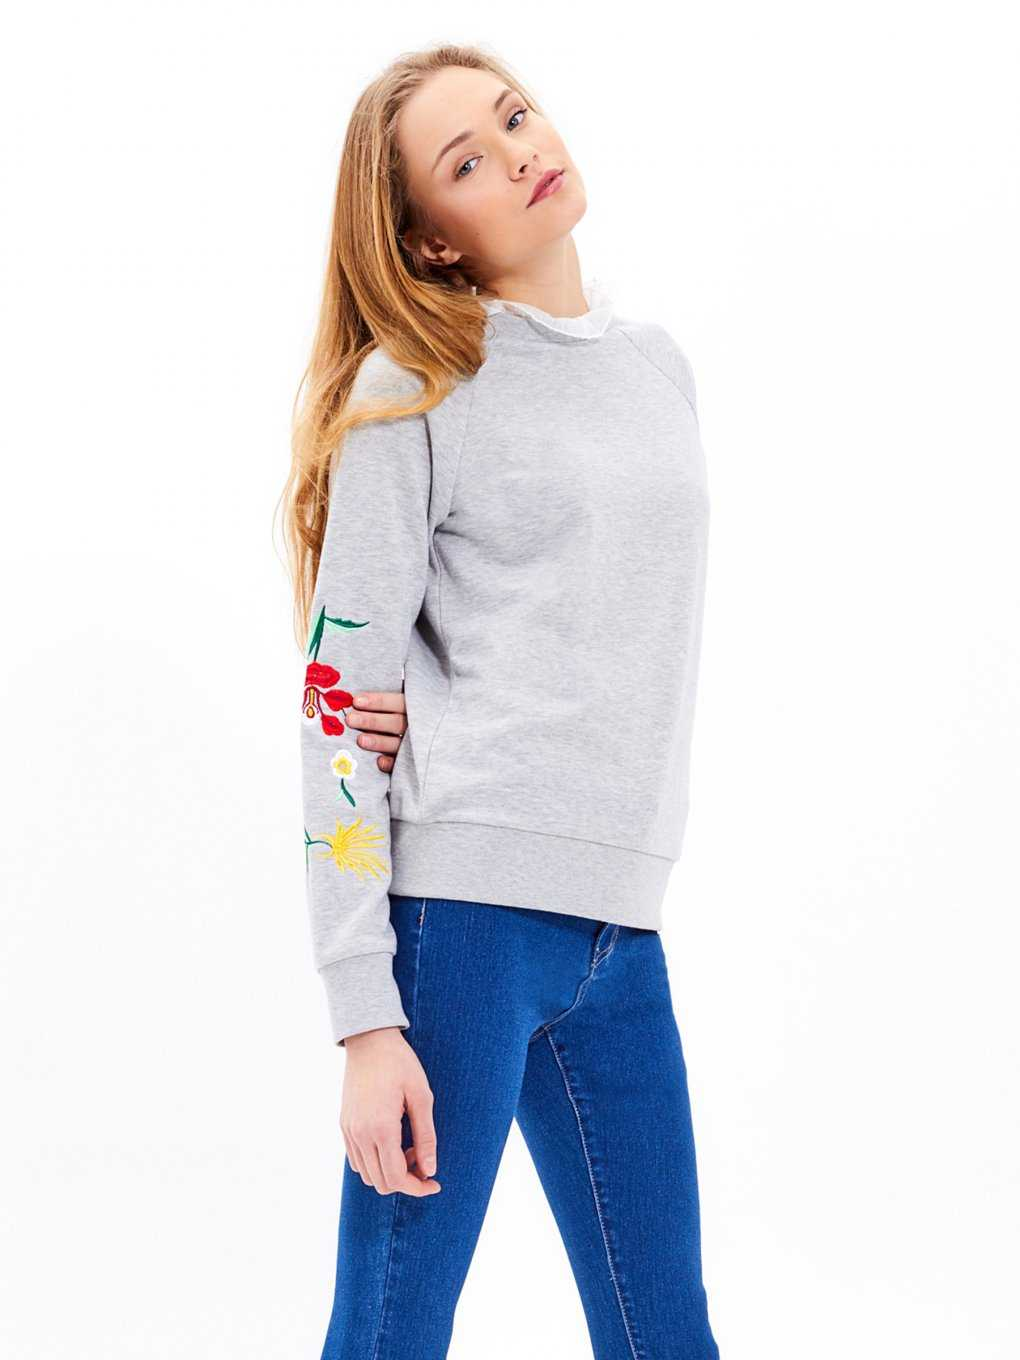 Sweatshirt with floral embroidery